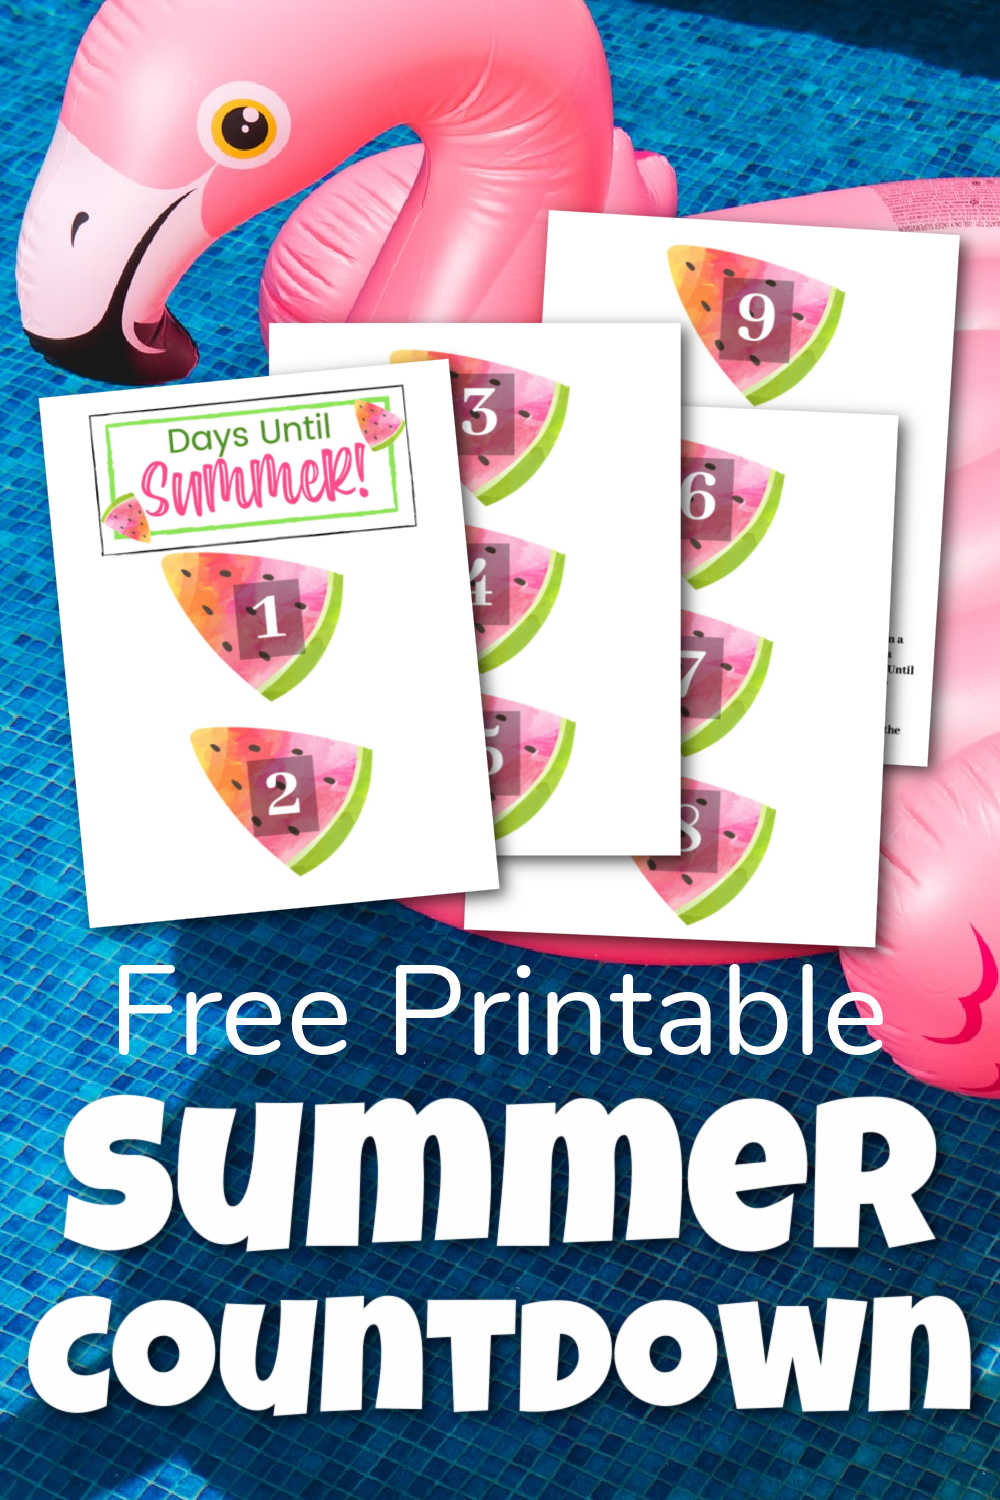 Countdown to Summer {Free Printable}